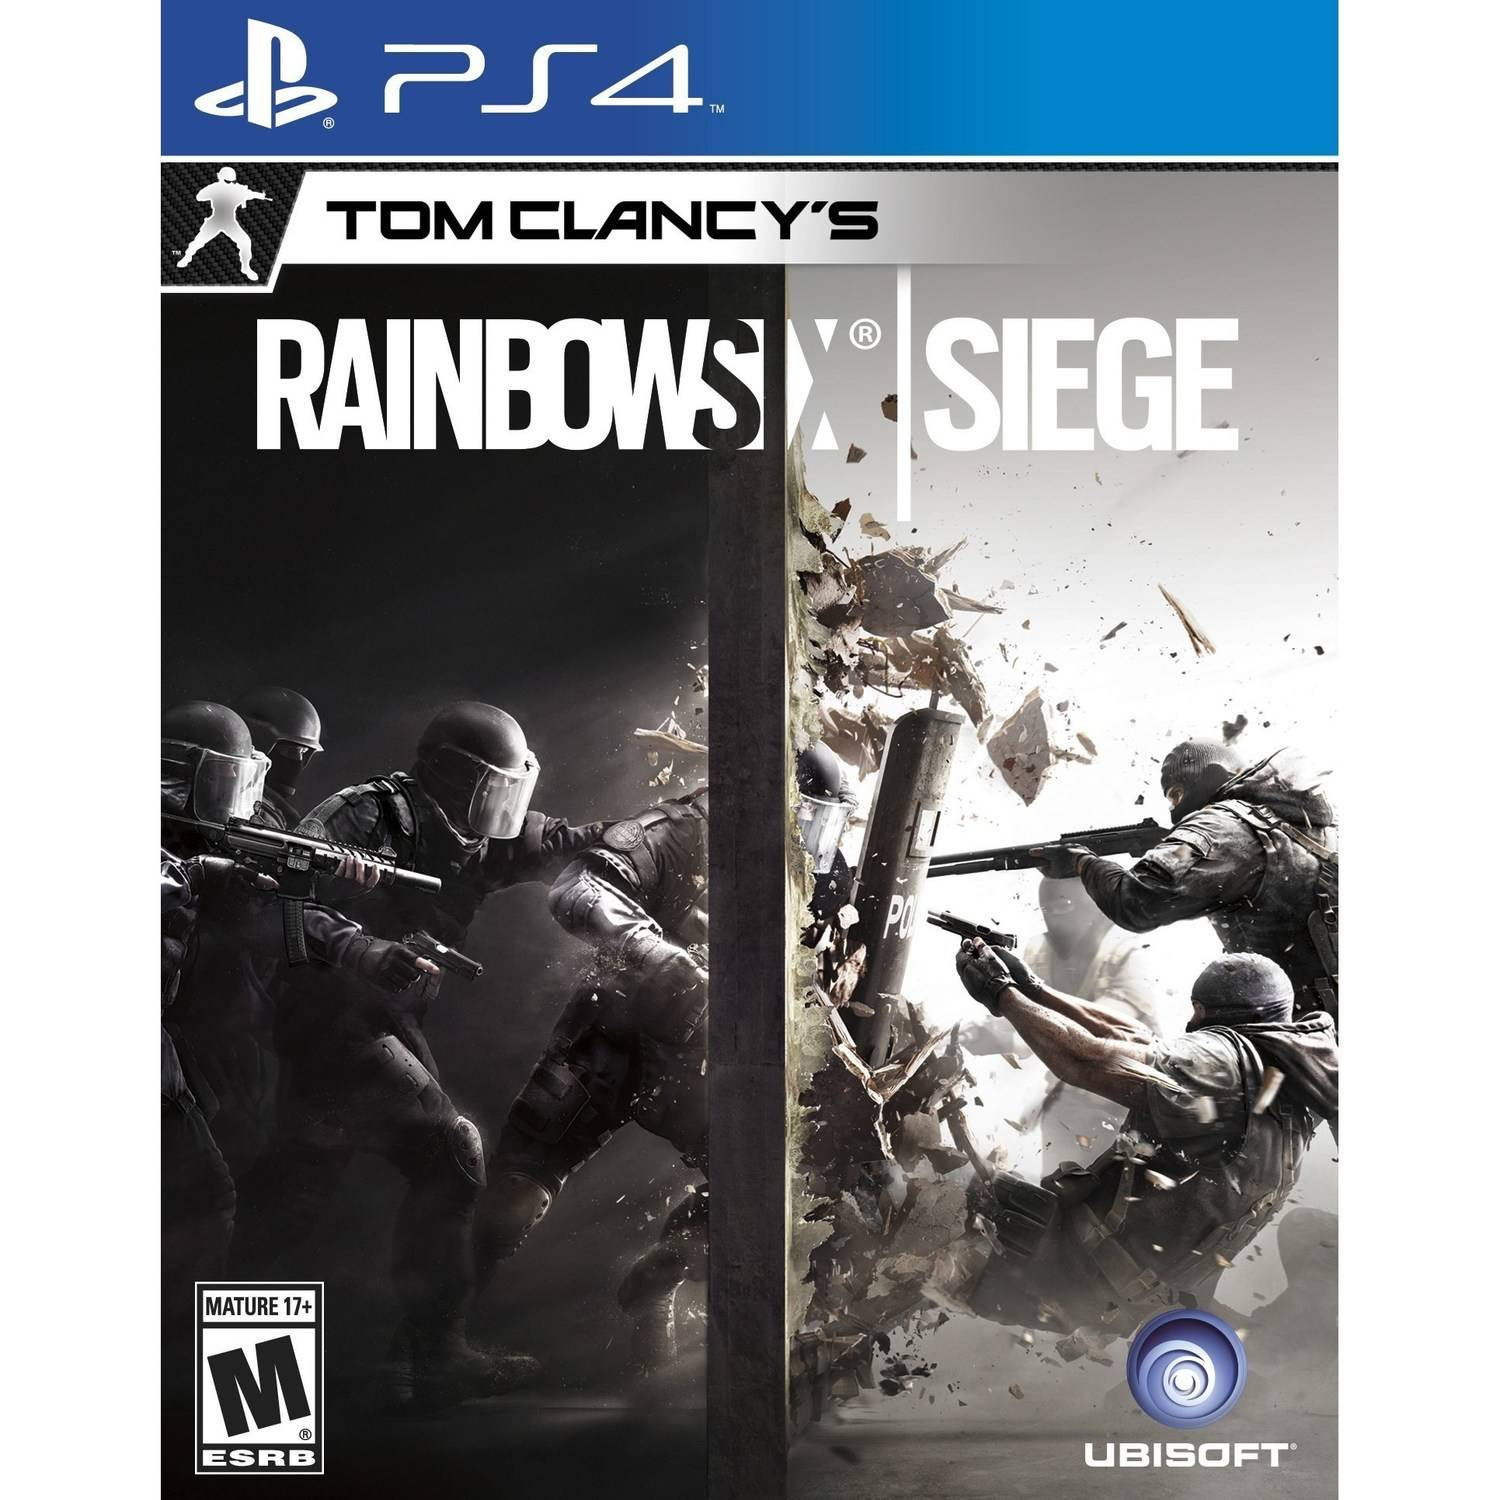 Tom Clancy's Rainbow Six: Siege, Ubisoft, PlayStation 4, 887256014674